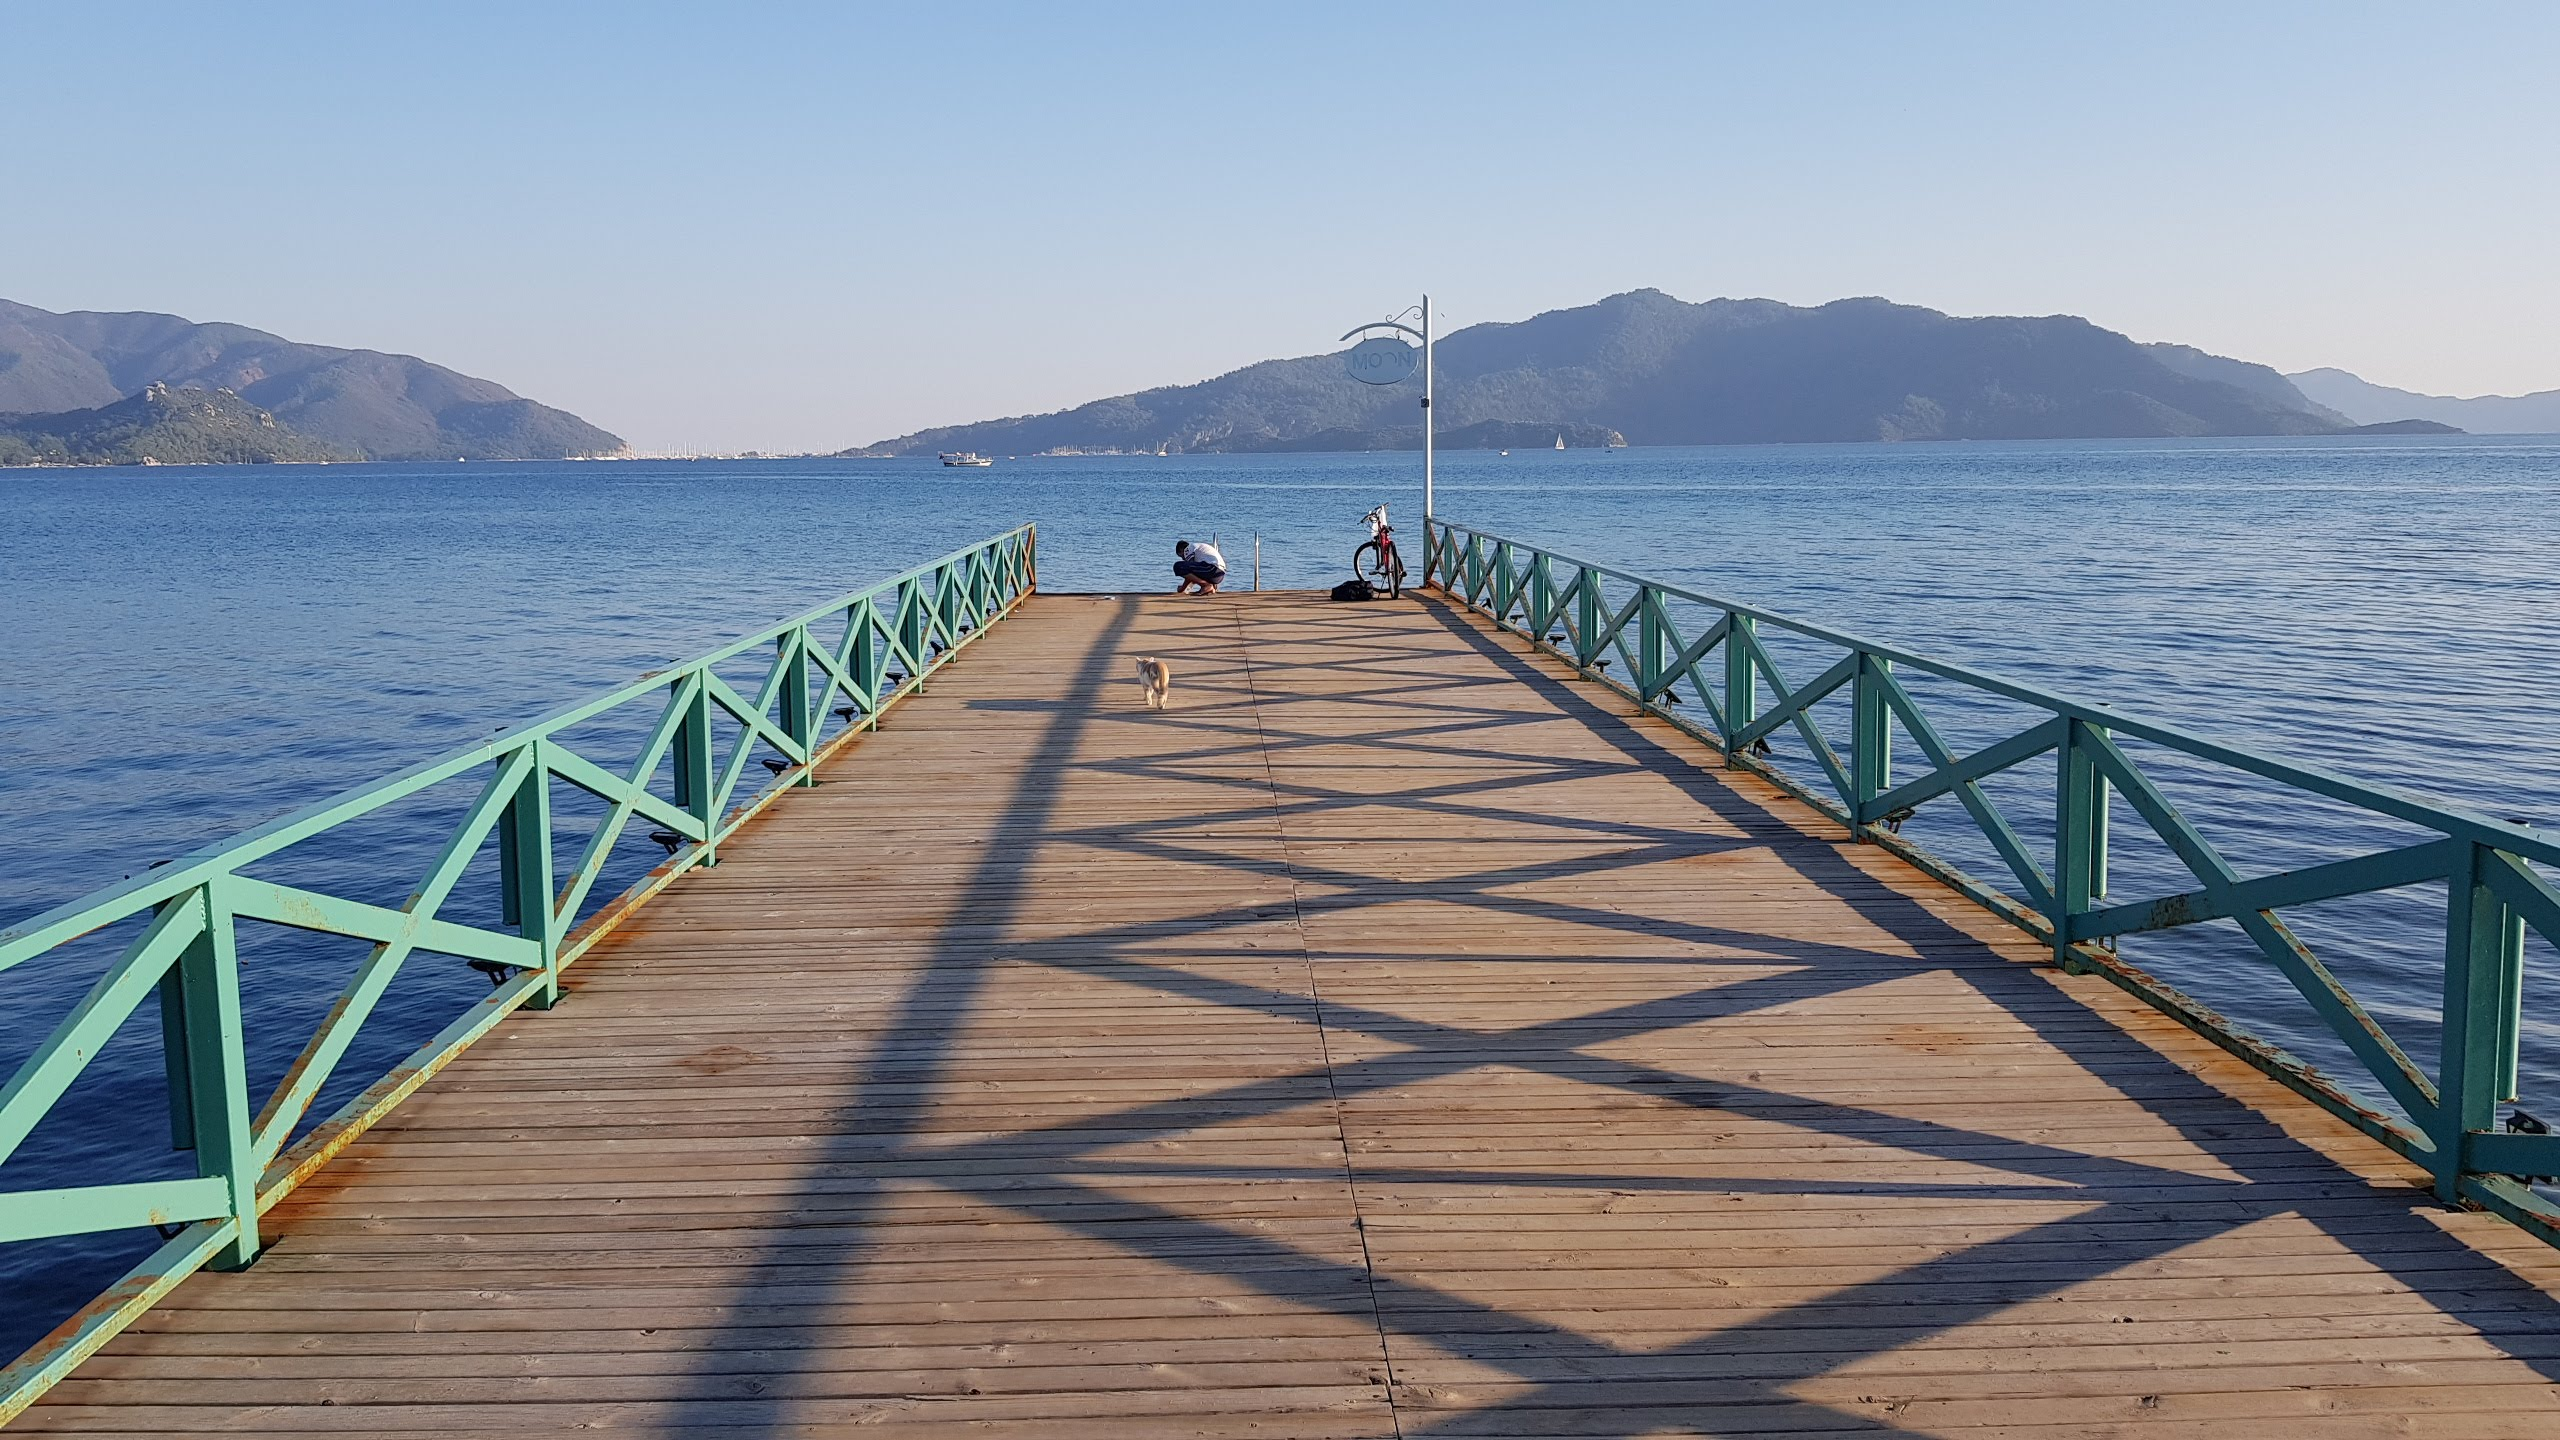 Community News and Events – week ending 21 June 2020 – clean-up group tackle littering in Hisarönü – Fethiye Times